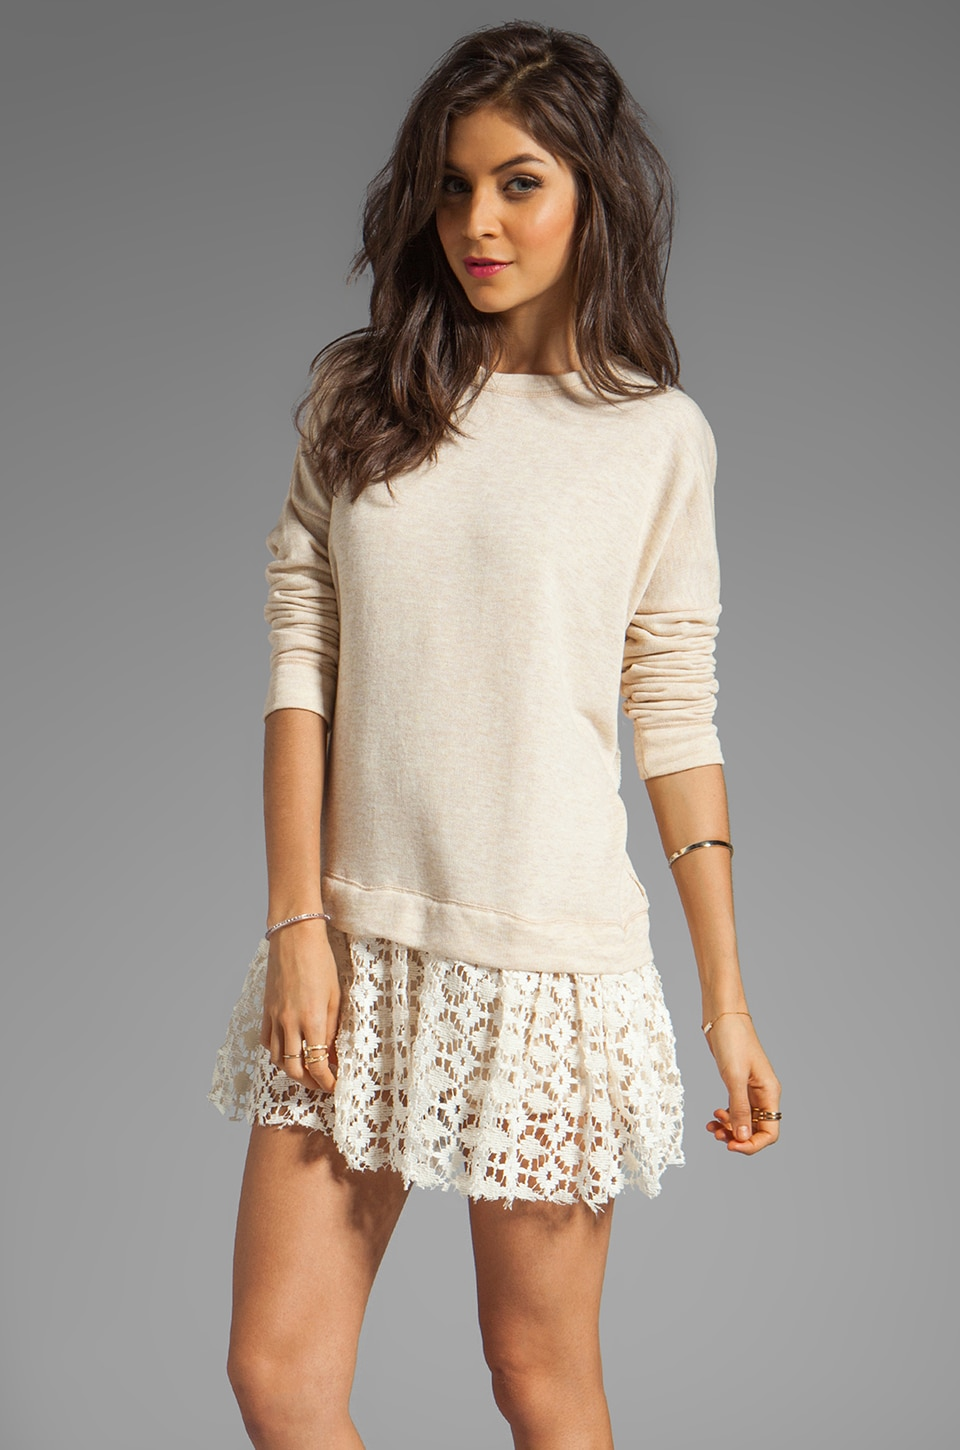 Free People Shake It Up Pullover Dress in Oatmeal